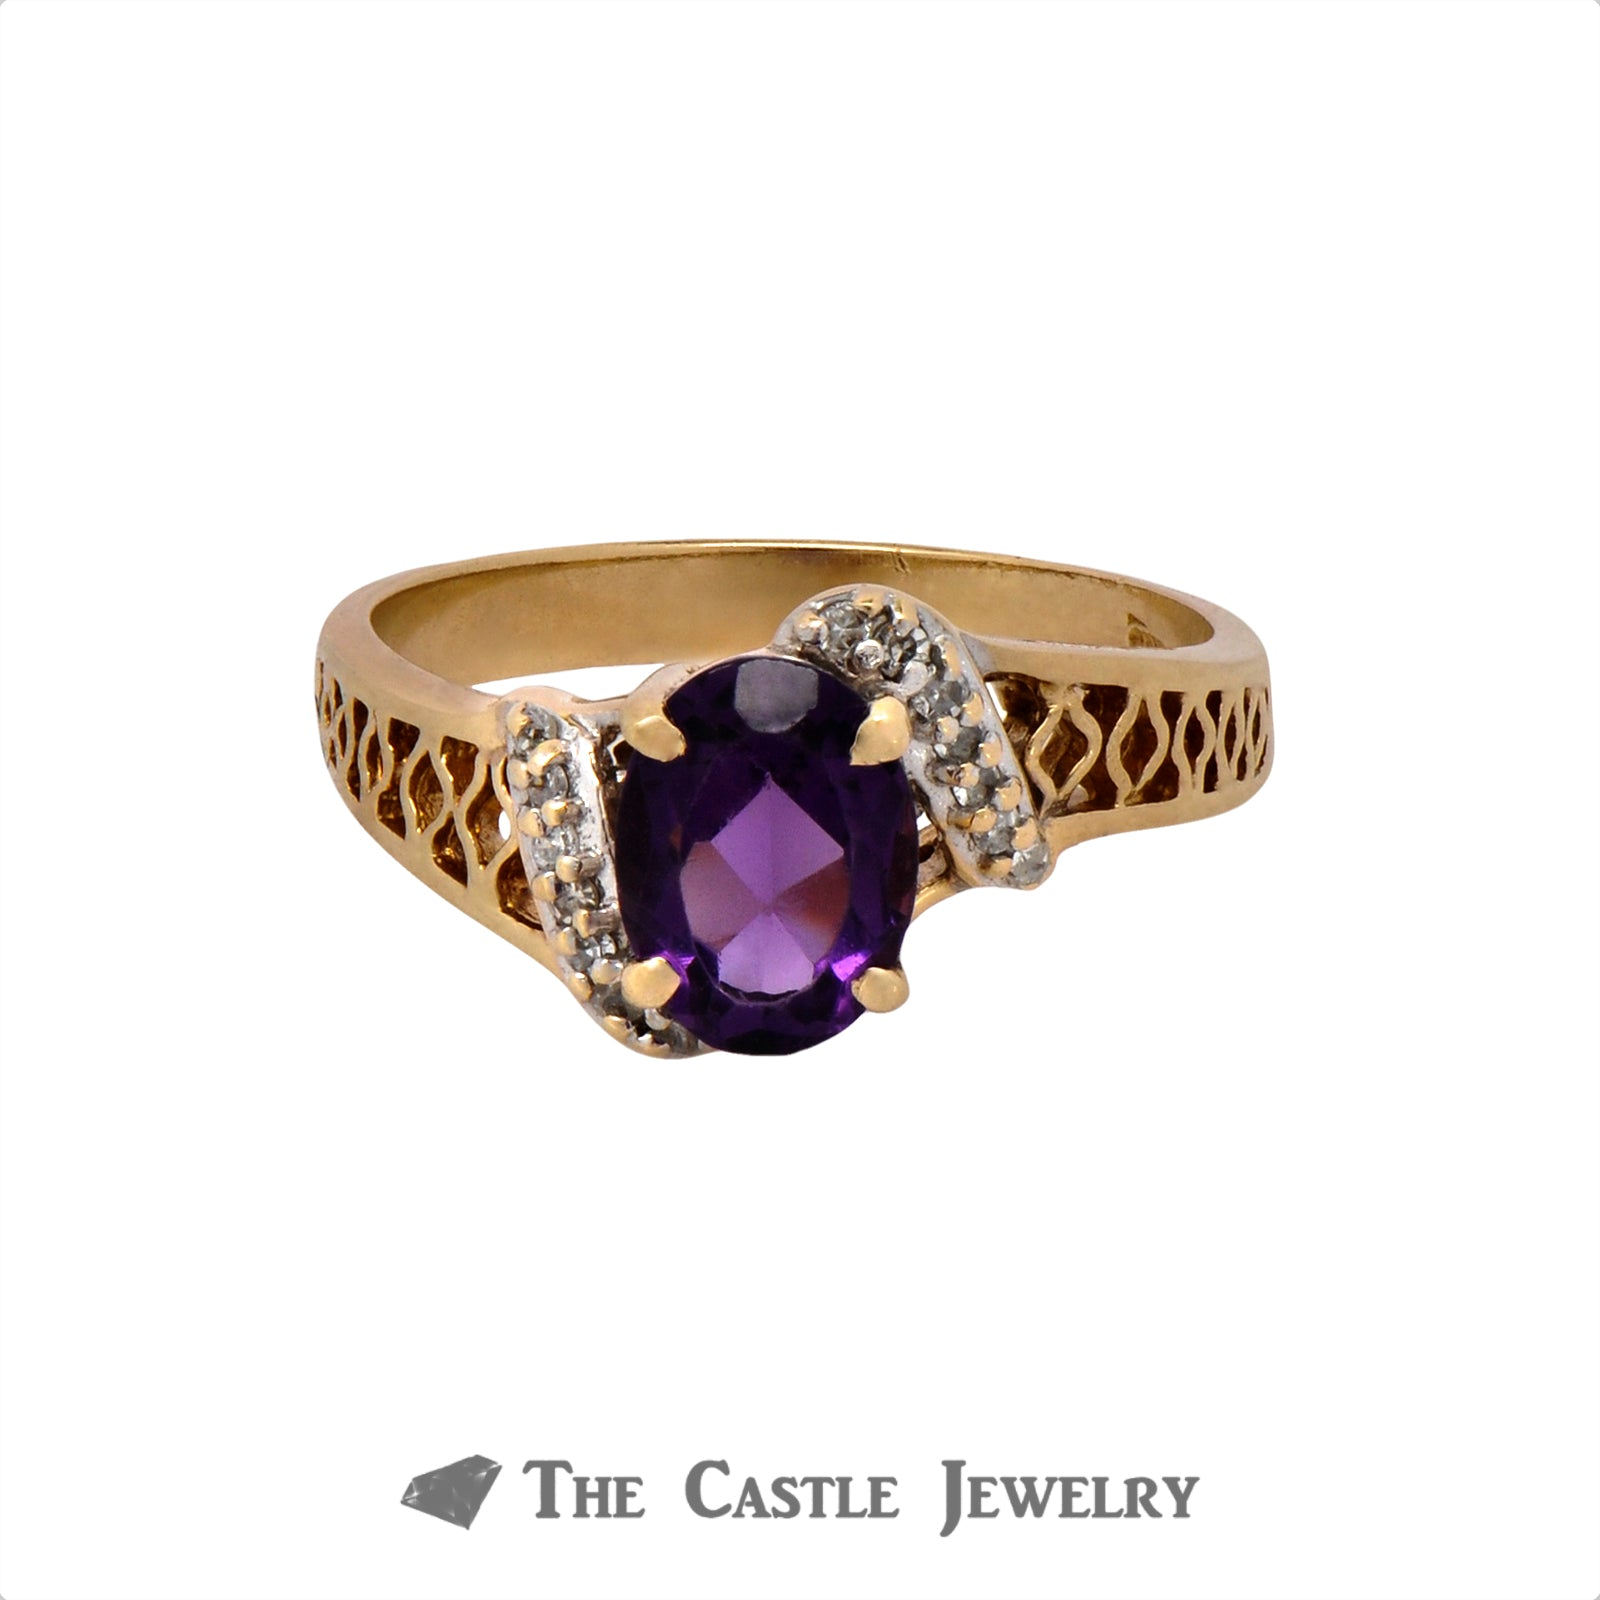 Oval Cut Amethyst Ring with .07cttw Diamond Accents in 10k Yellow Gold Open Filigree Setting